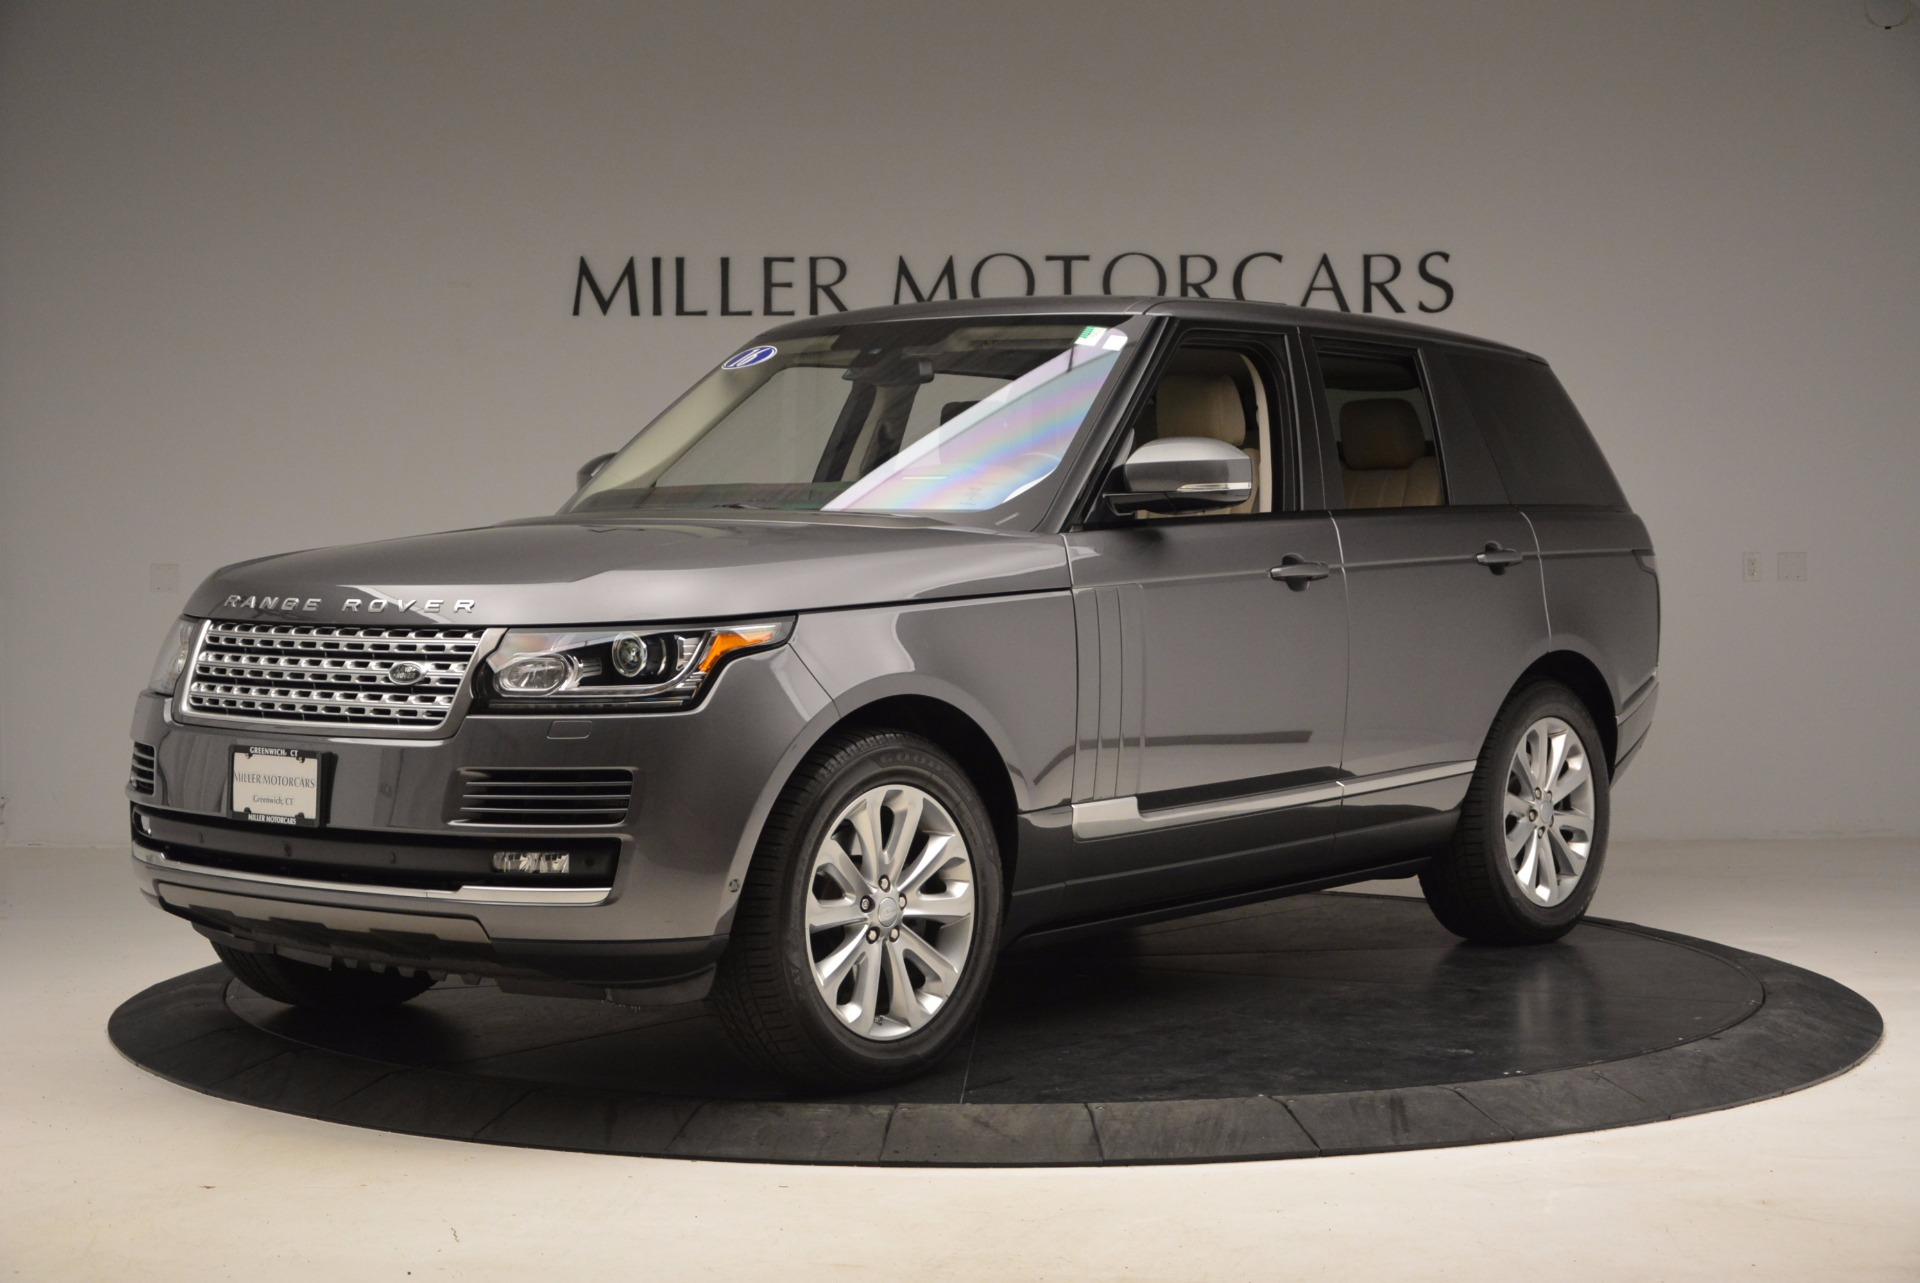 range vienna main used autobiography stock l rover sale landrover htm dealer for va locator land c